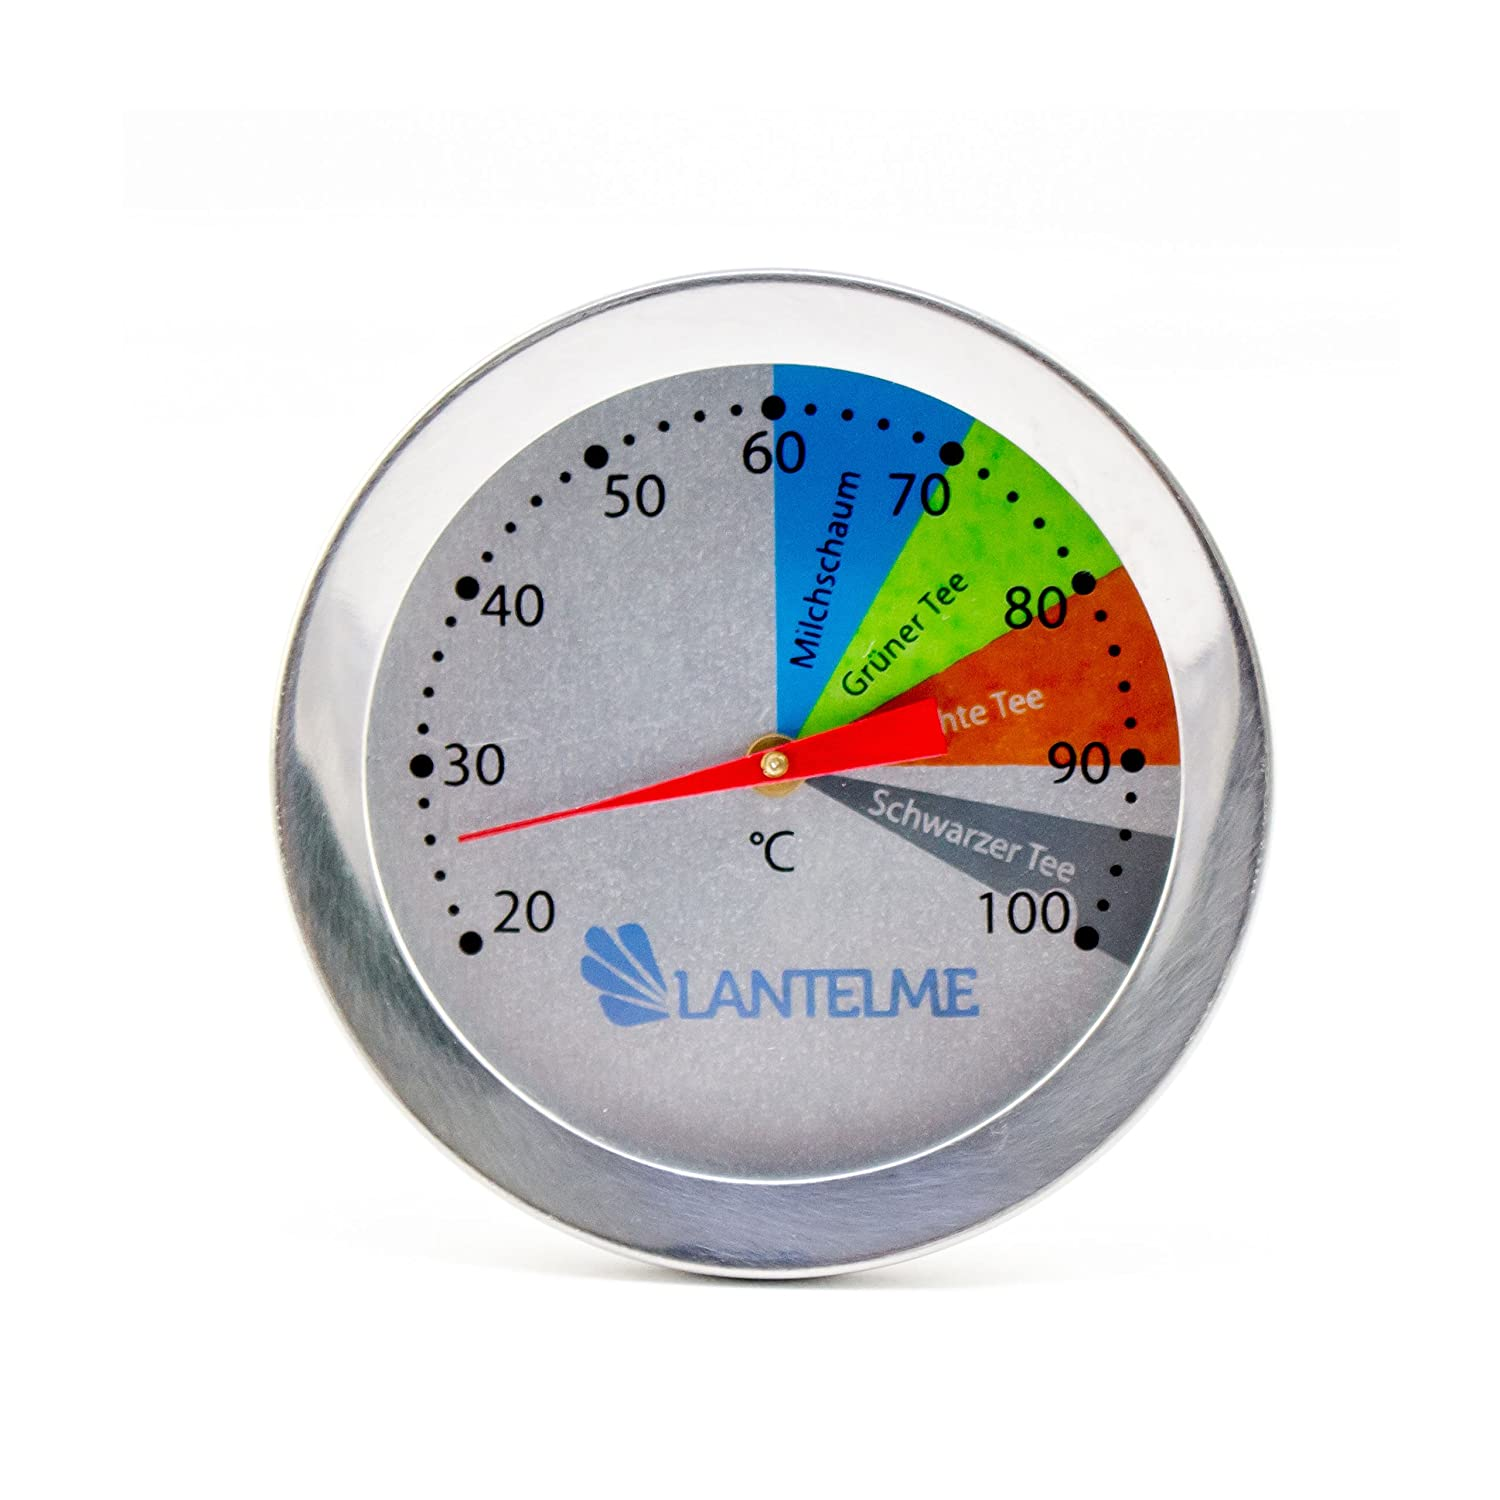 Lantelme 5845 Preserving Thermometer Stainless Steel Waterproof